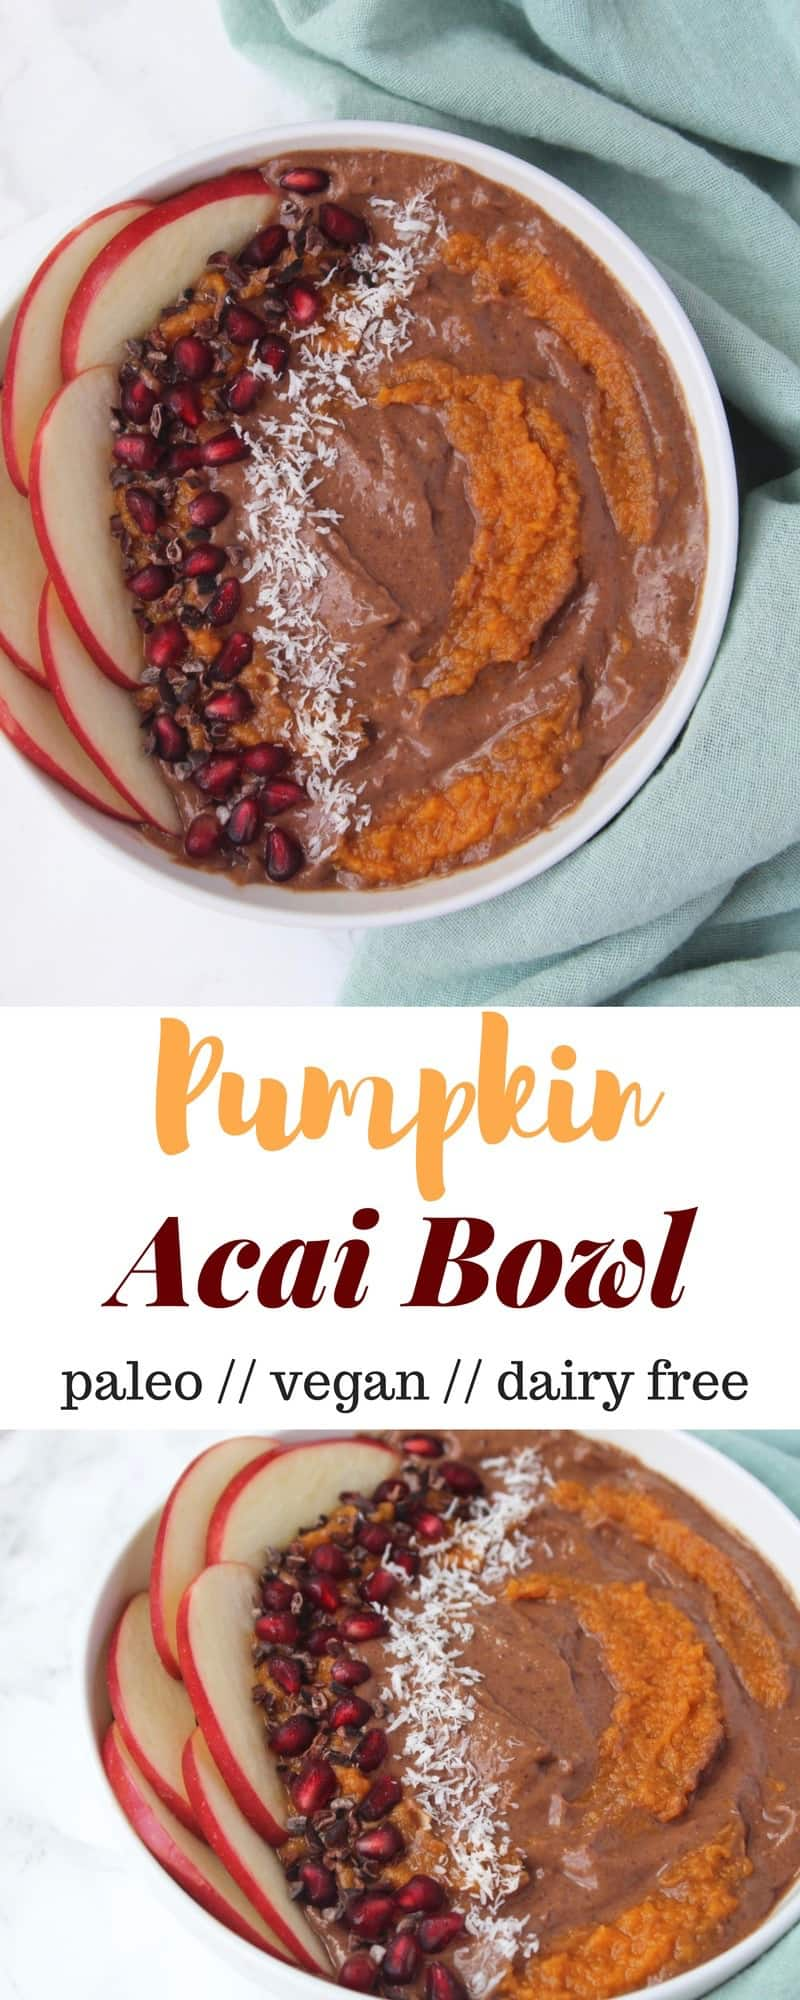 Pumpkin Acai Bowl